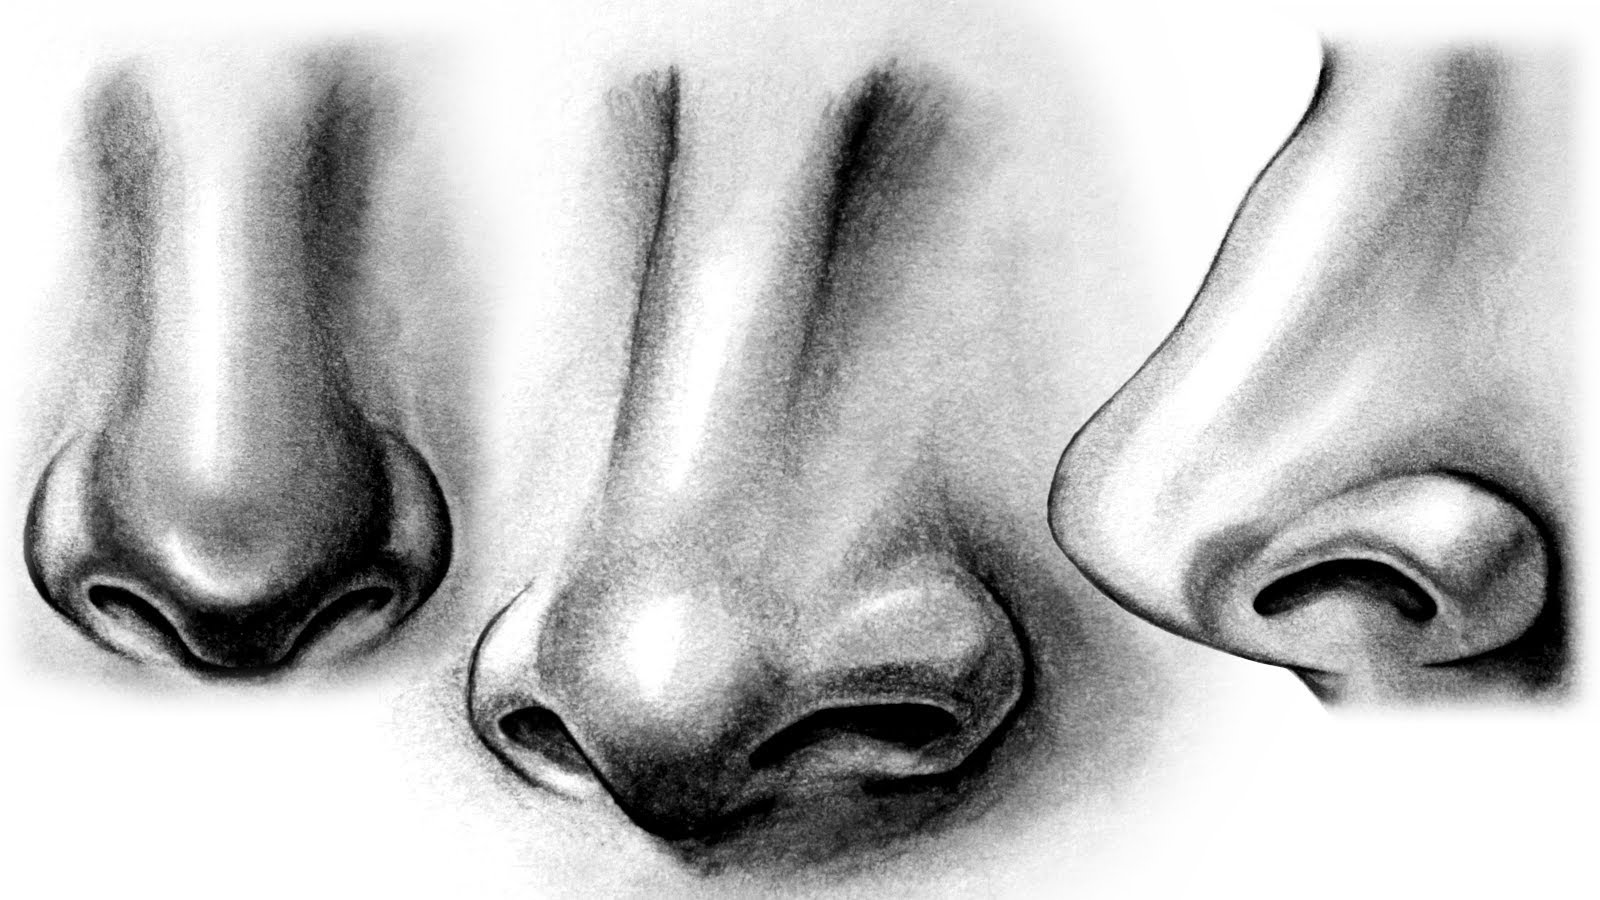 Drawn amd nose How to Nose YouTube a